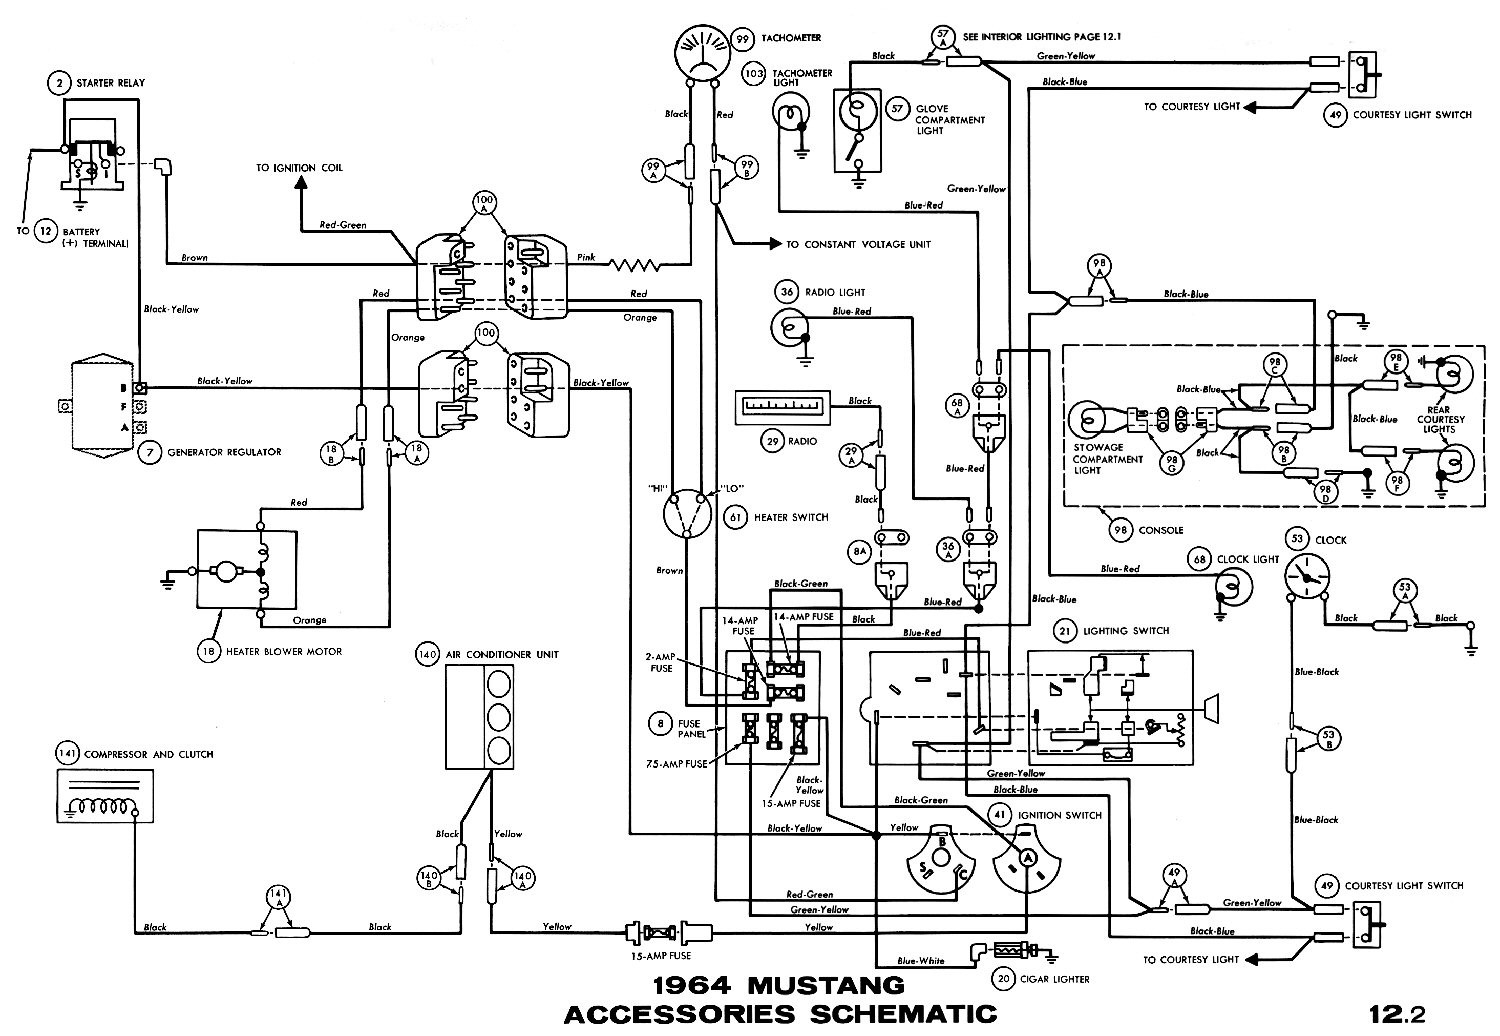 1964 mustang wiring diagrams average joe restoration rh averagejoerestoration Wiring Schematics for Cars Wiring Diagram